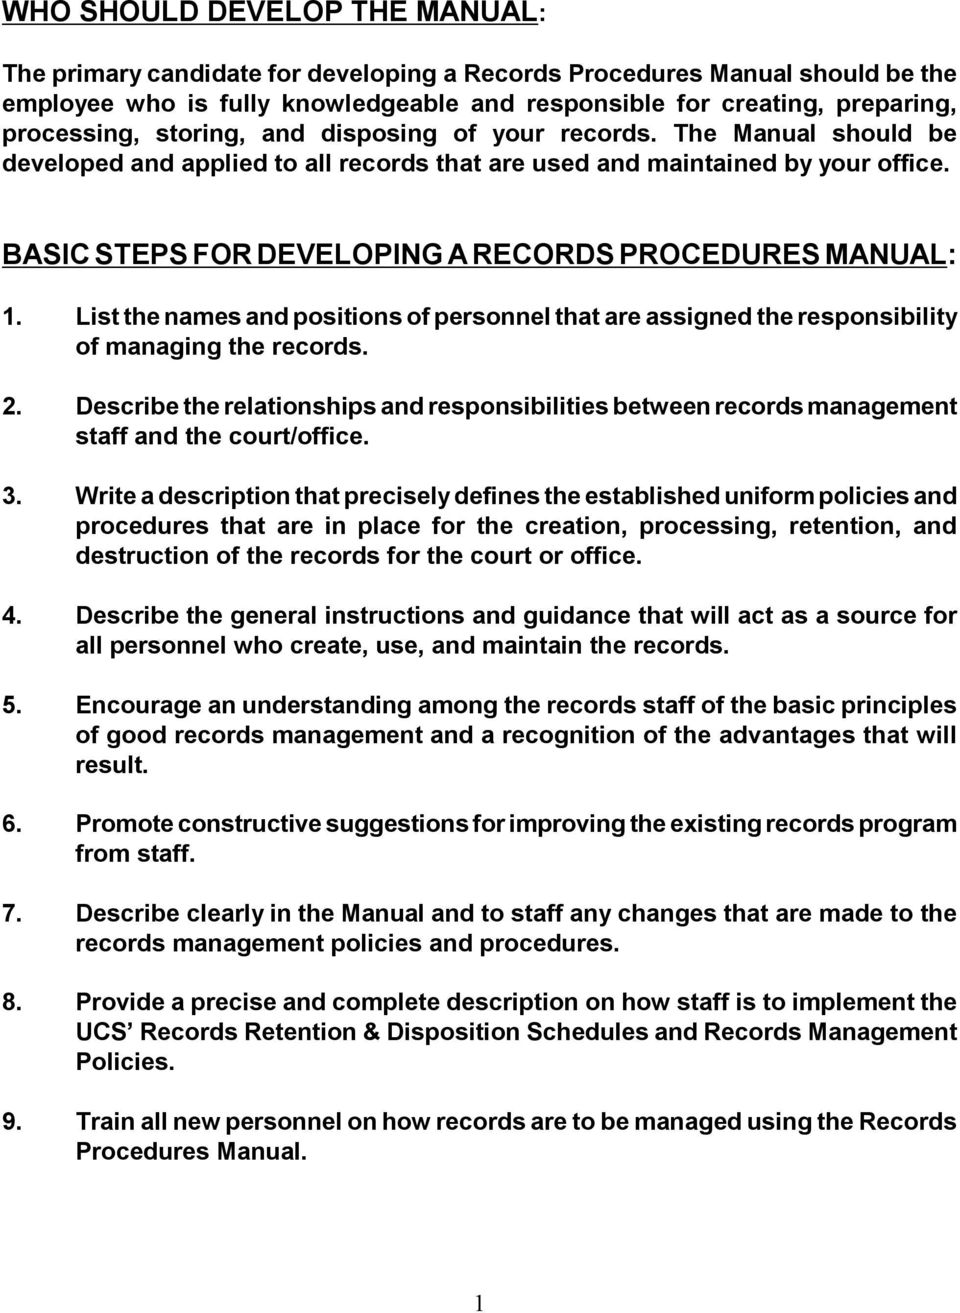 BASIC STEPS FOR DEVELOPING A RECORDS PROCEDURES MANUAL: 1. List the names and positions of personnel that are assigned the responsibility of managing the records. 2.